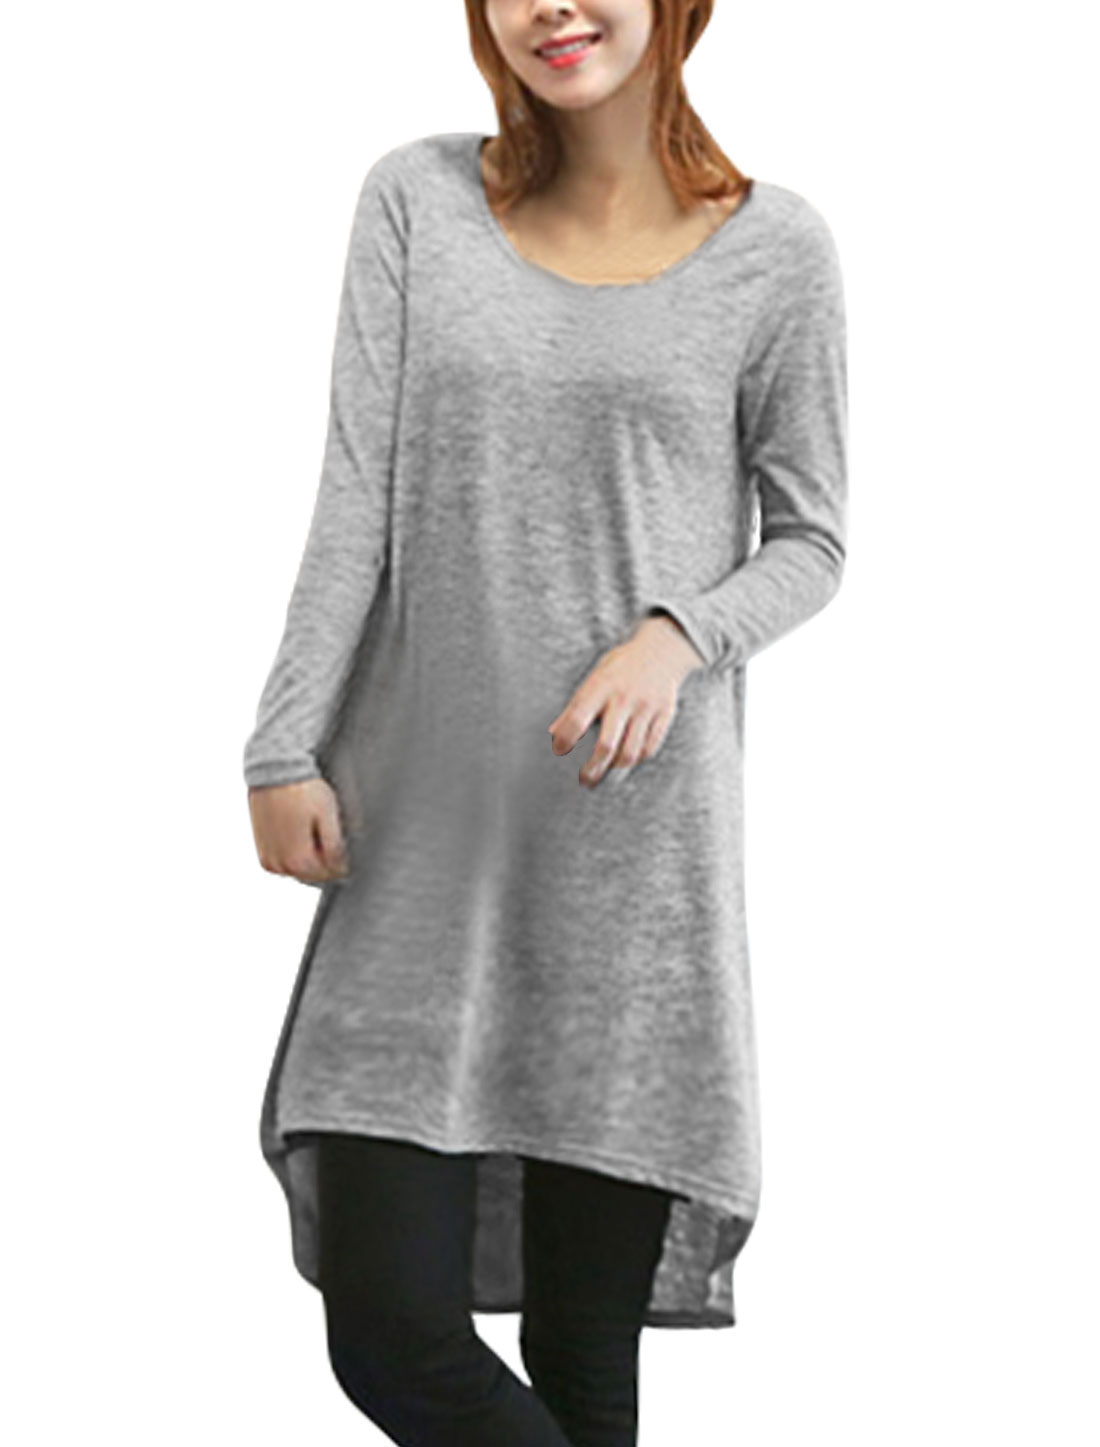 Loose Fit Fashion Low Hight Hem Pullover Tunic Top for Lady Light Gray XS